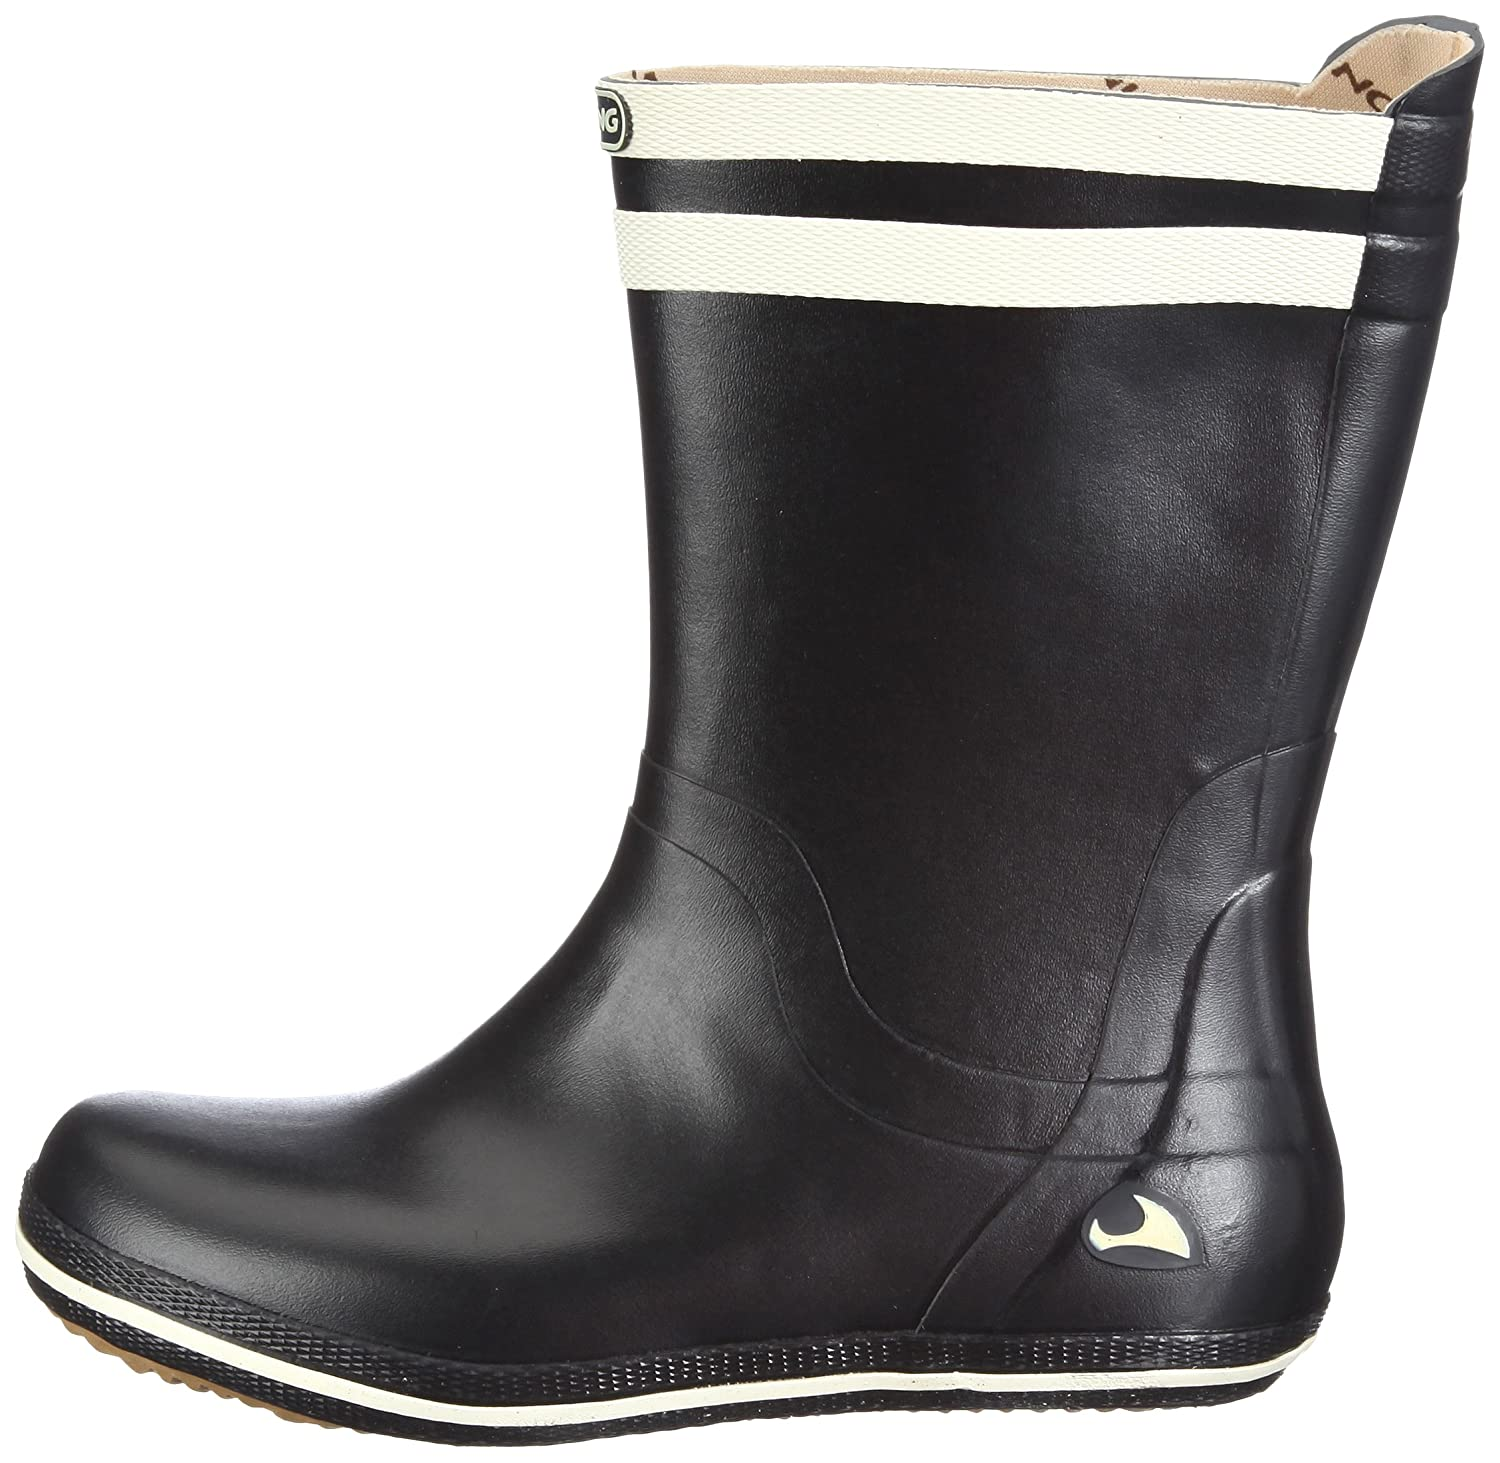 Unisex Adults MATROS Rubber Boots Viking